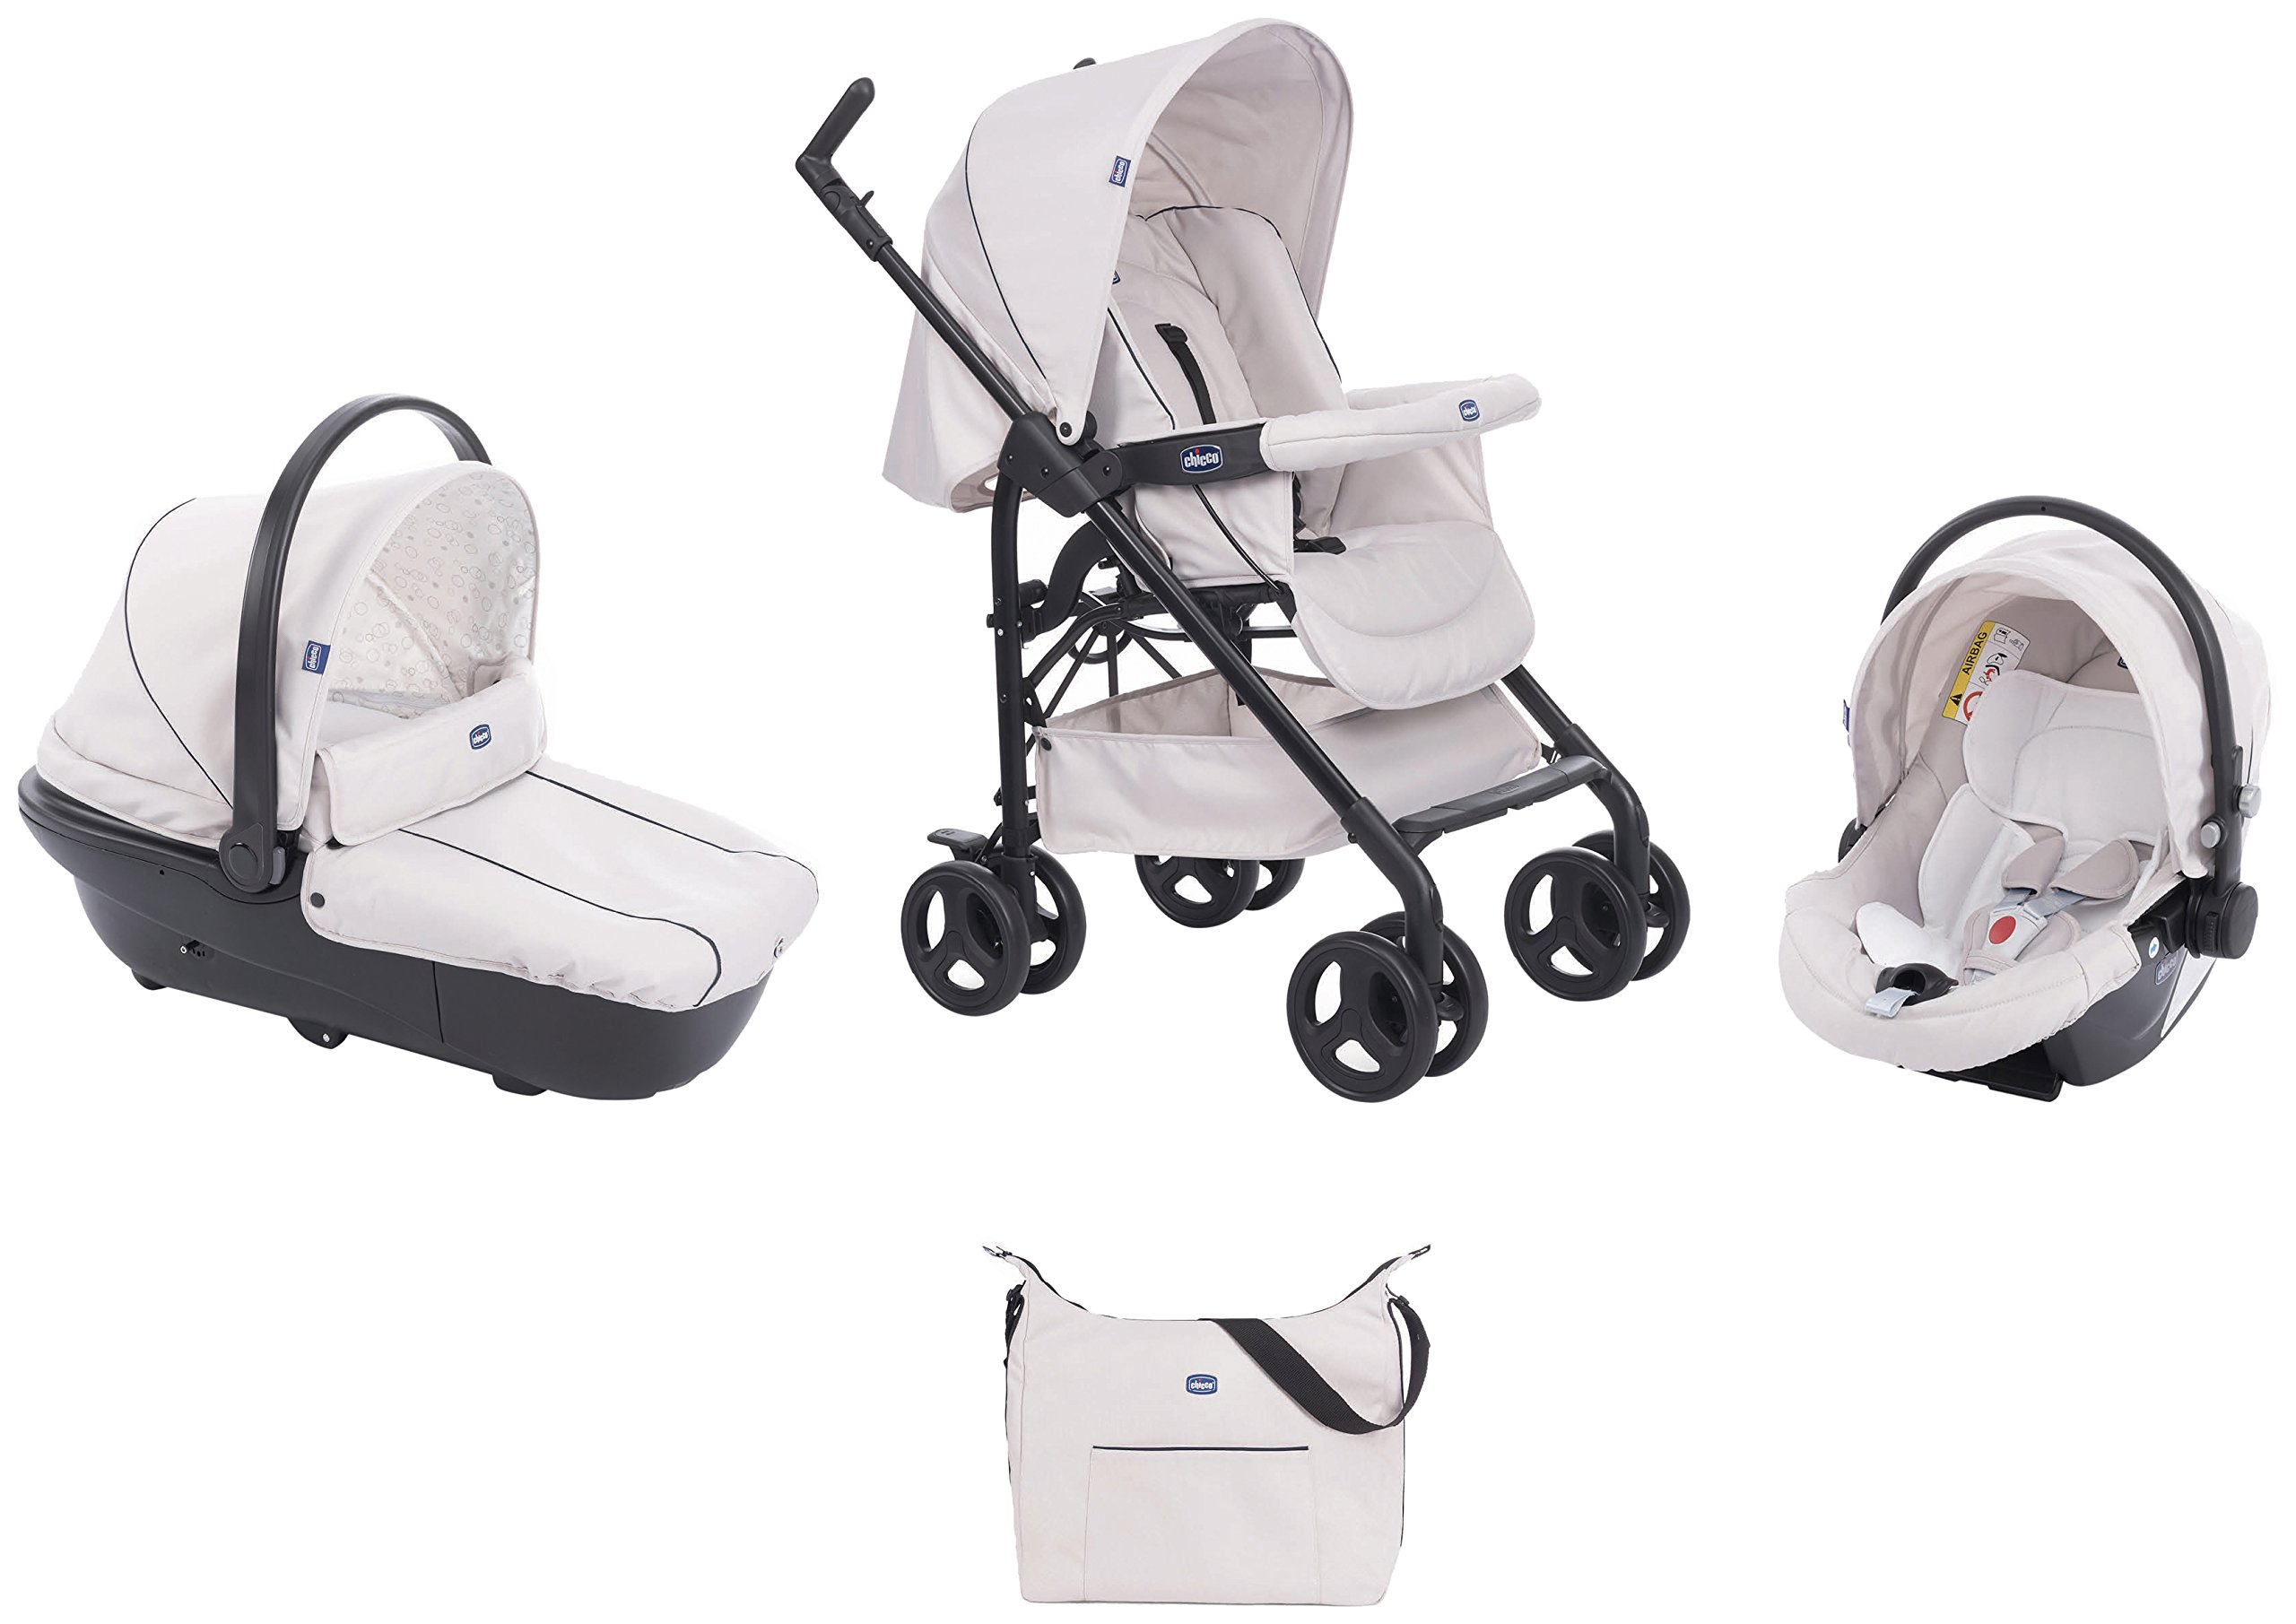 Chicco Trio-System Sprint Black with Car Kit, Sandshell  Sprint is a lightweight sports car with a large, comfortable seat / bed With baby shell synthesis 0+ incl. 5-point-belt, kiva with 3-point-belt incl. kit car, rain cover Incl. exit bag with changing mat, footmuff, comfort handles (360 ° ergonomic twist-push handles), hanging basket 2